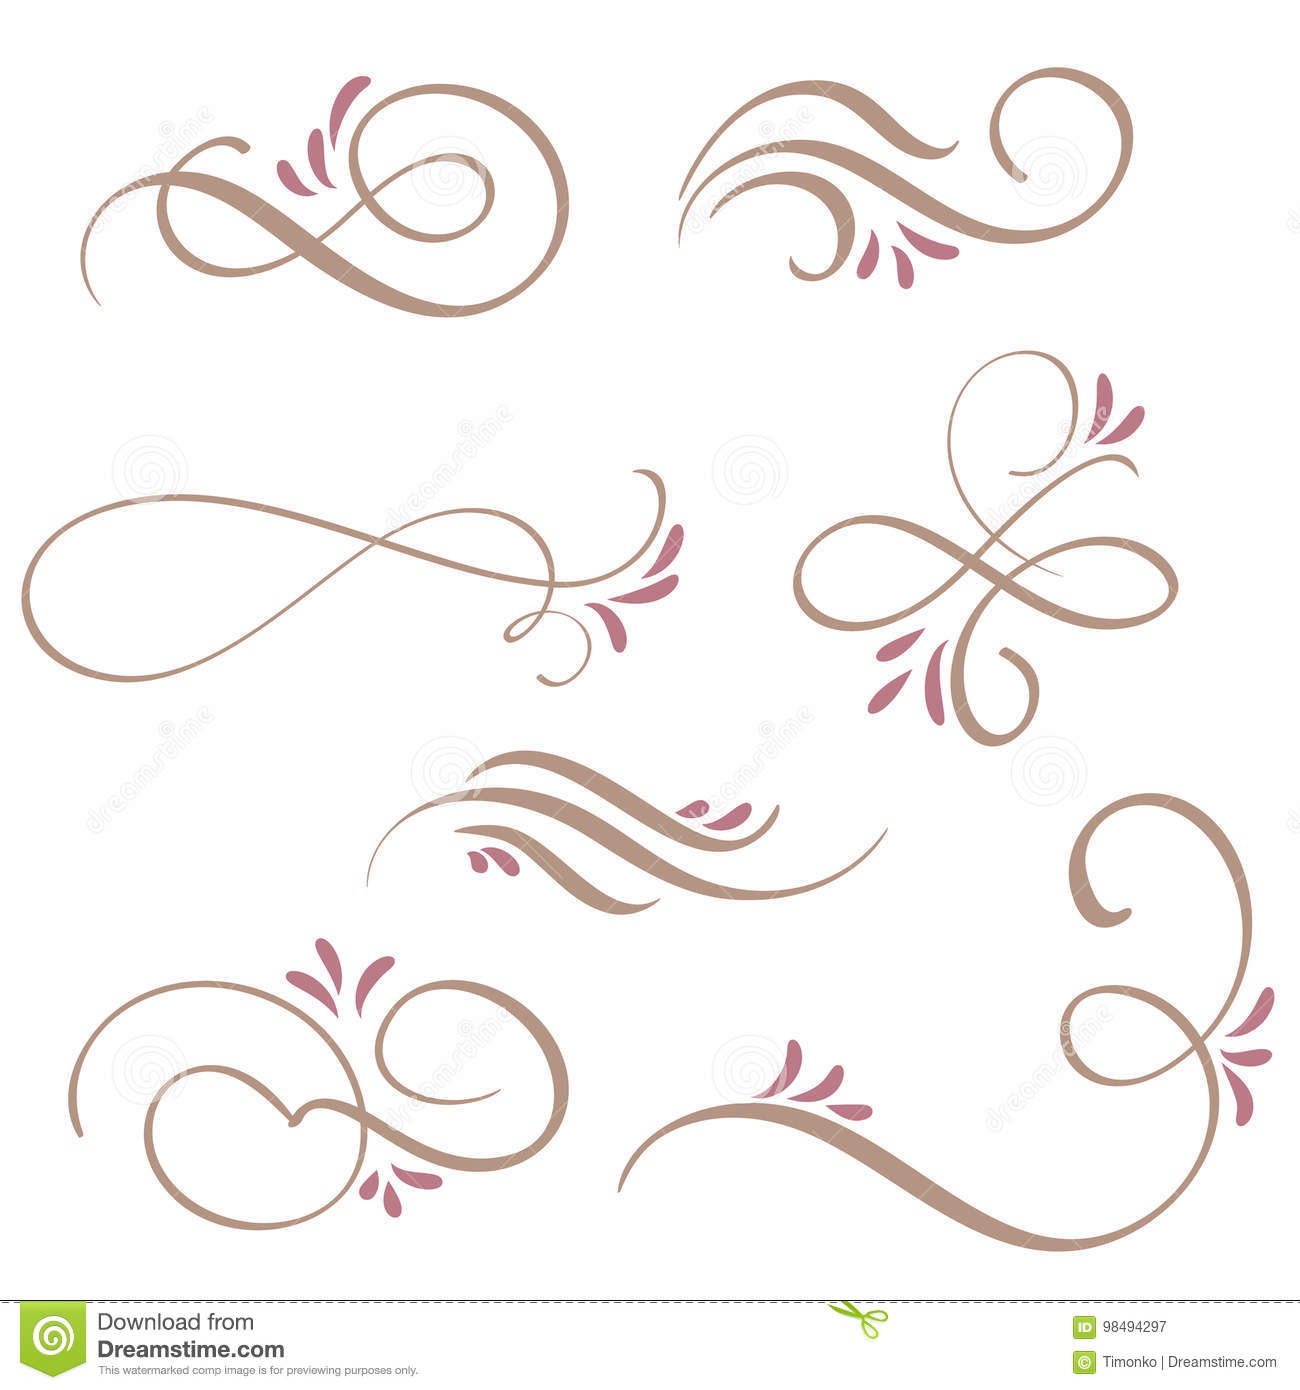 Set of calligraphy flourish art with vintage decorative whorls for design. Vector illustration EPS10